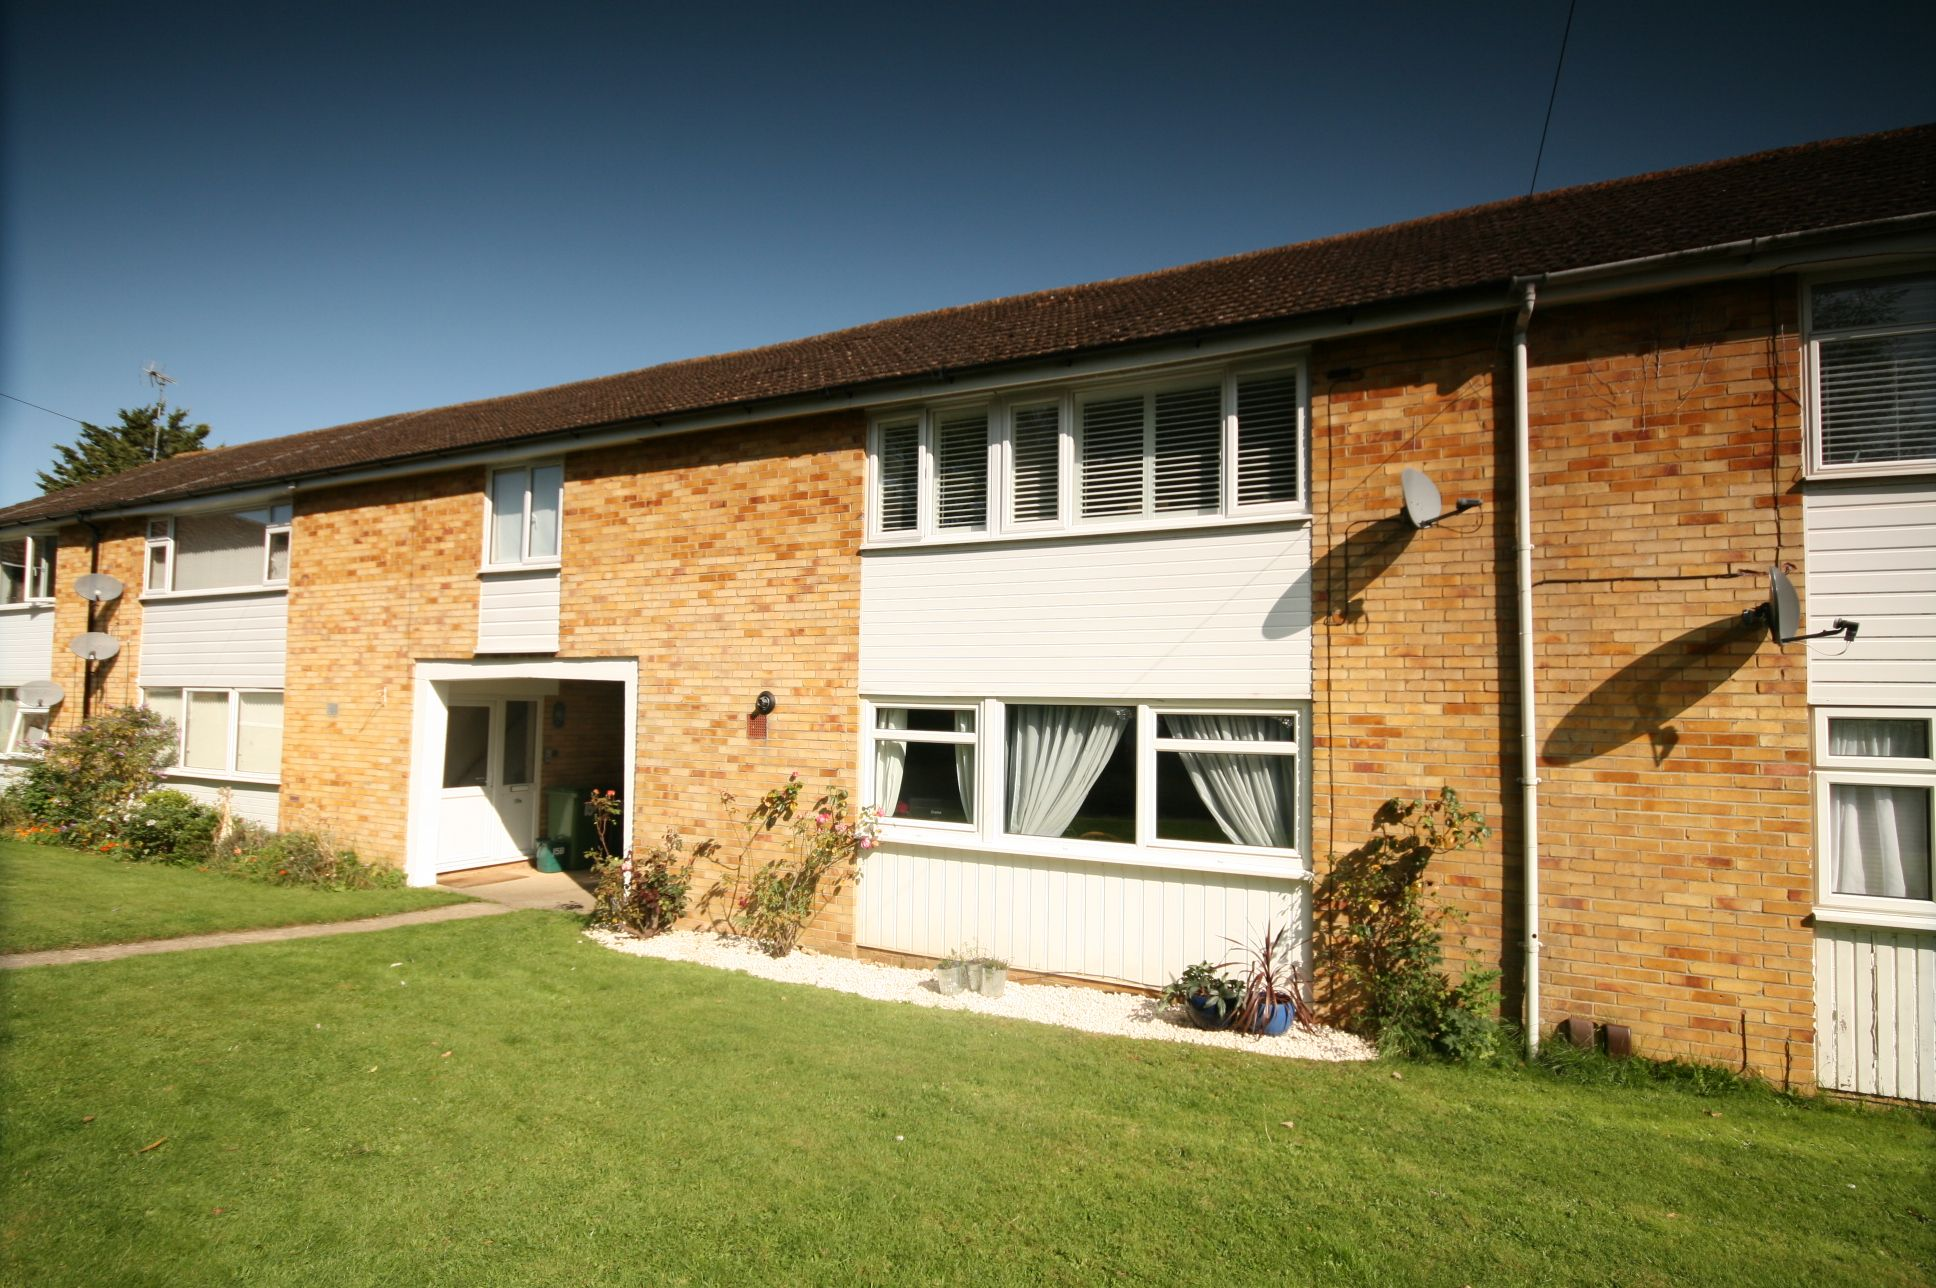 2 Bedroom Ground Floor Flat/apartment For Sale - Photograph 1